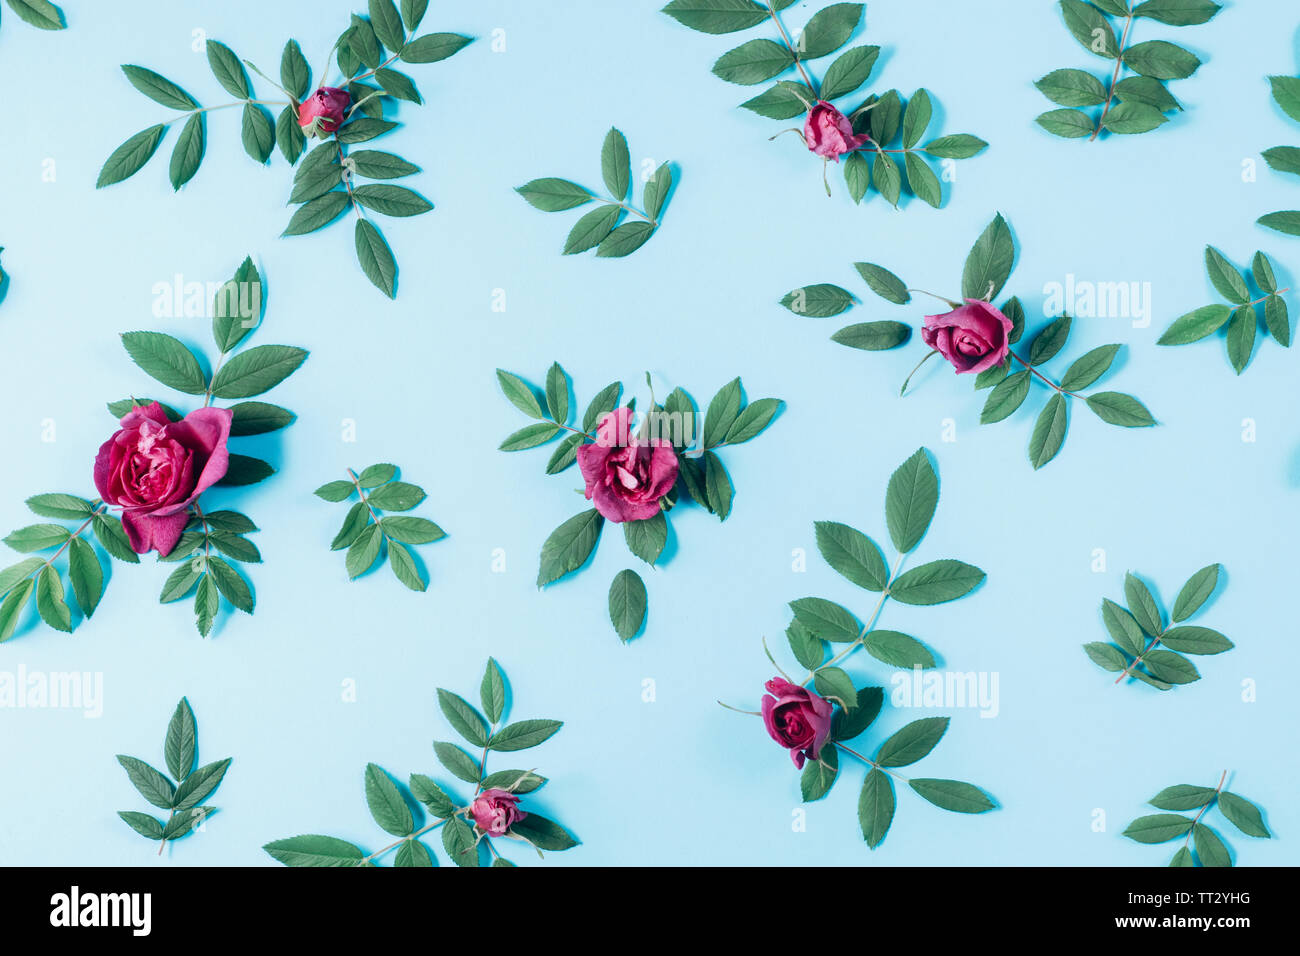 Floral pattern made of red roses, green leaves, branches on pastel blue background. Flat lay, top view. Nature background. Pattern of flowers. Flowers Stock Photo